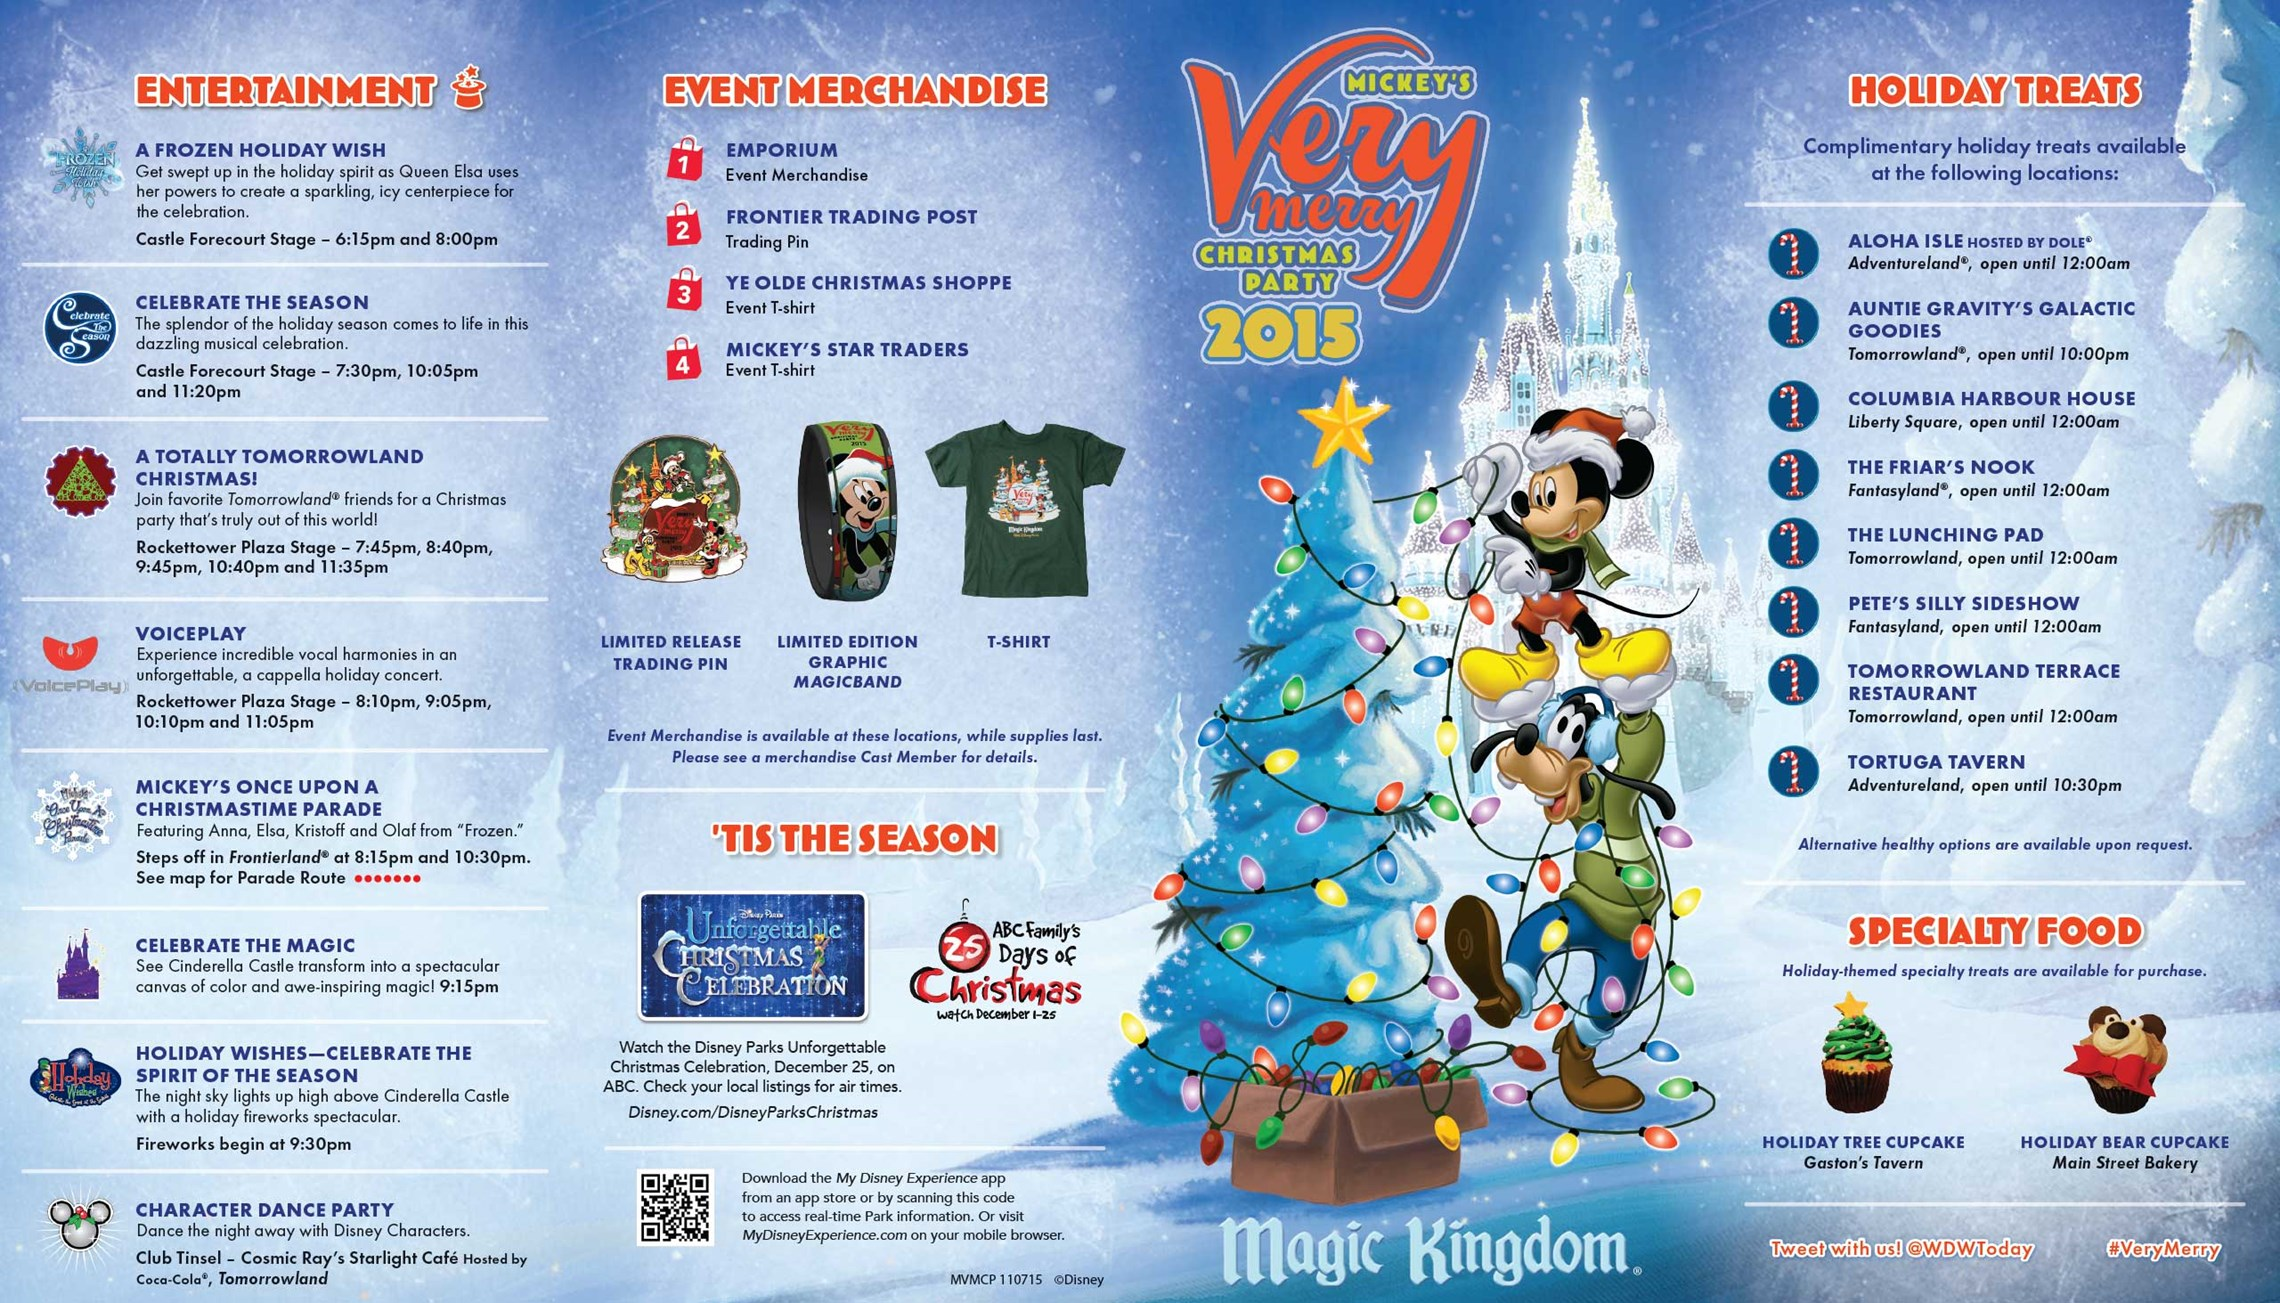 Nov 07 2015 Mickeys Very Merry Christmas Party 2015 guide map SBtIgWJn